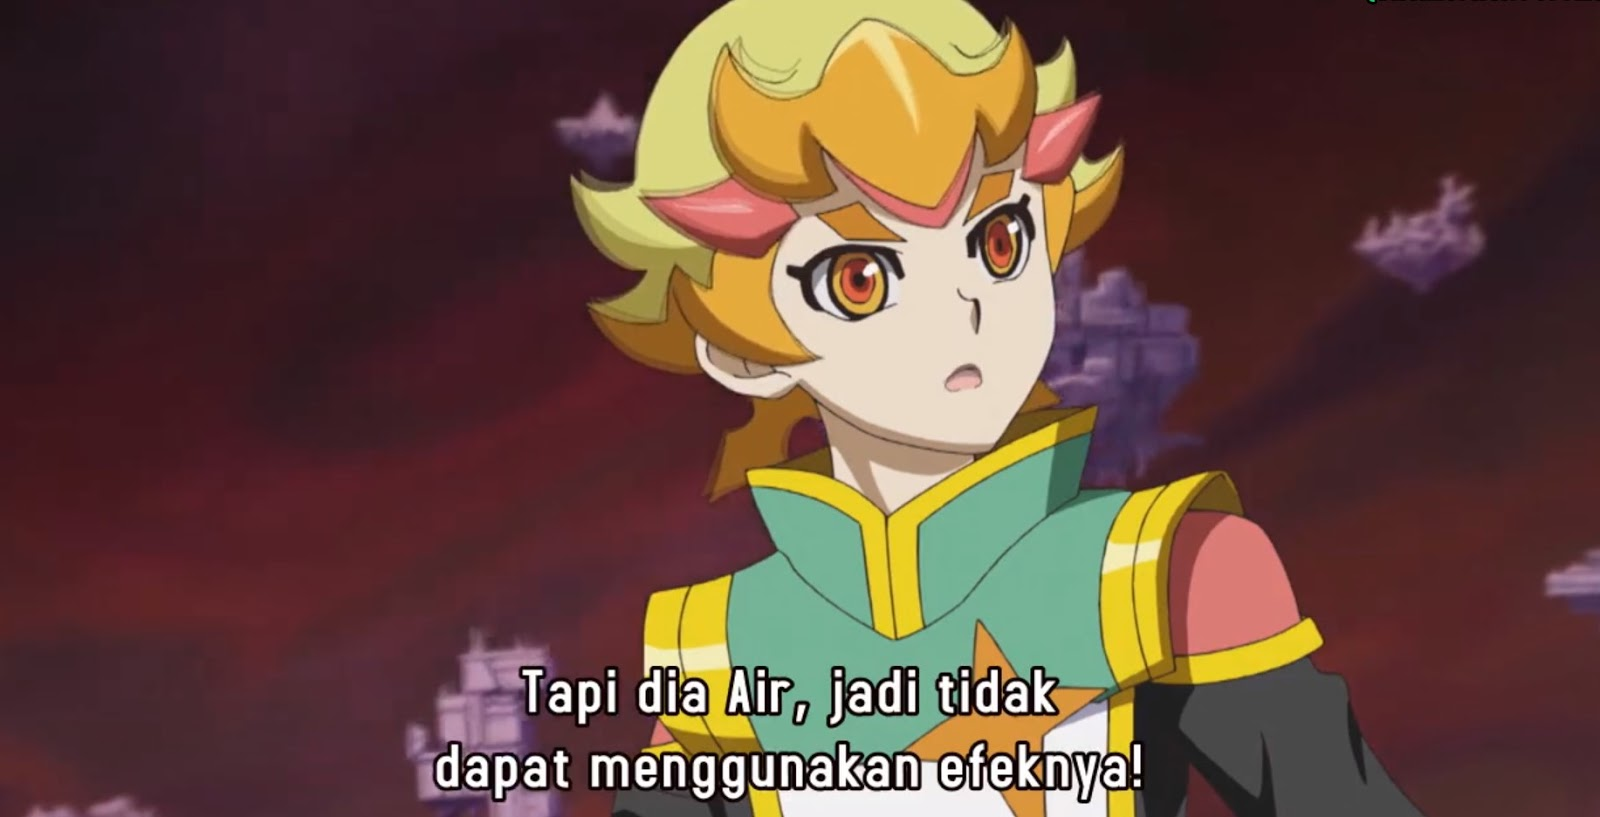 yu-gi-oh! vrains episode 85 subtitle indonesia - black avelic